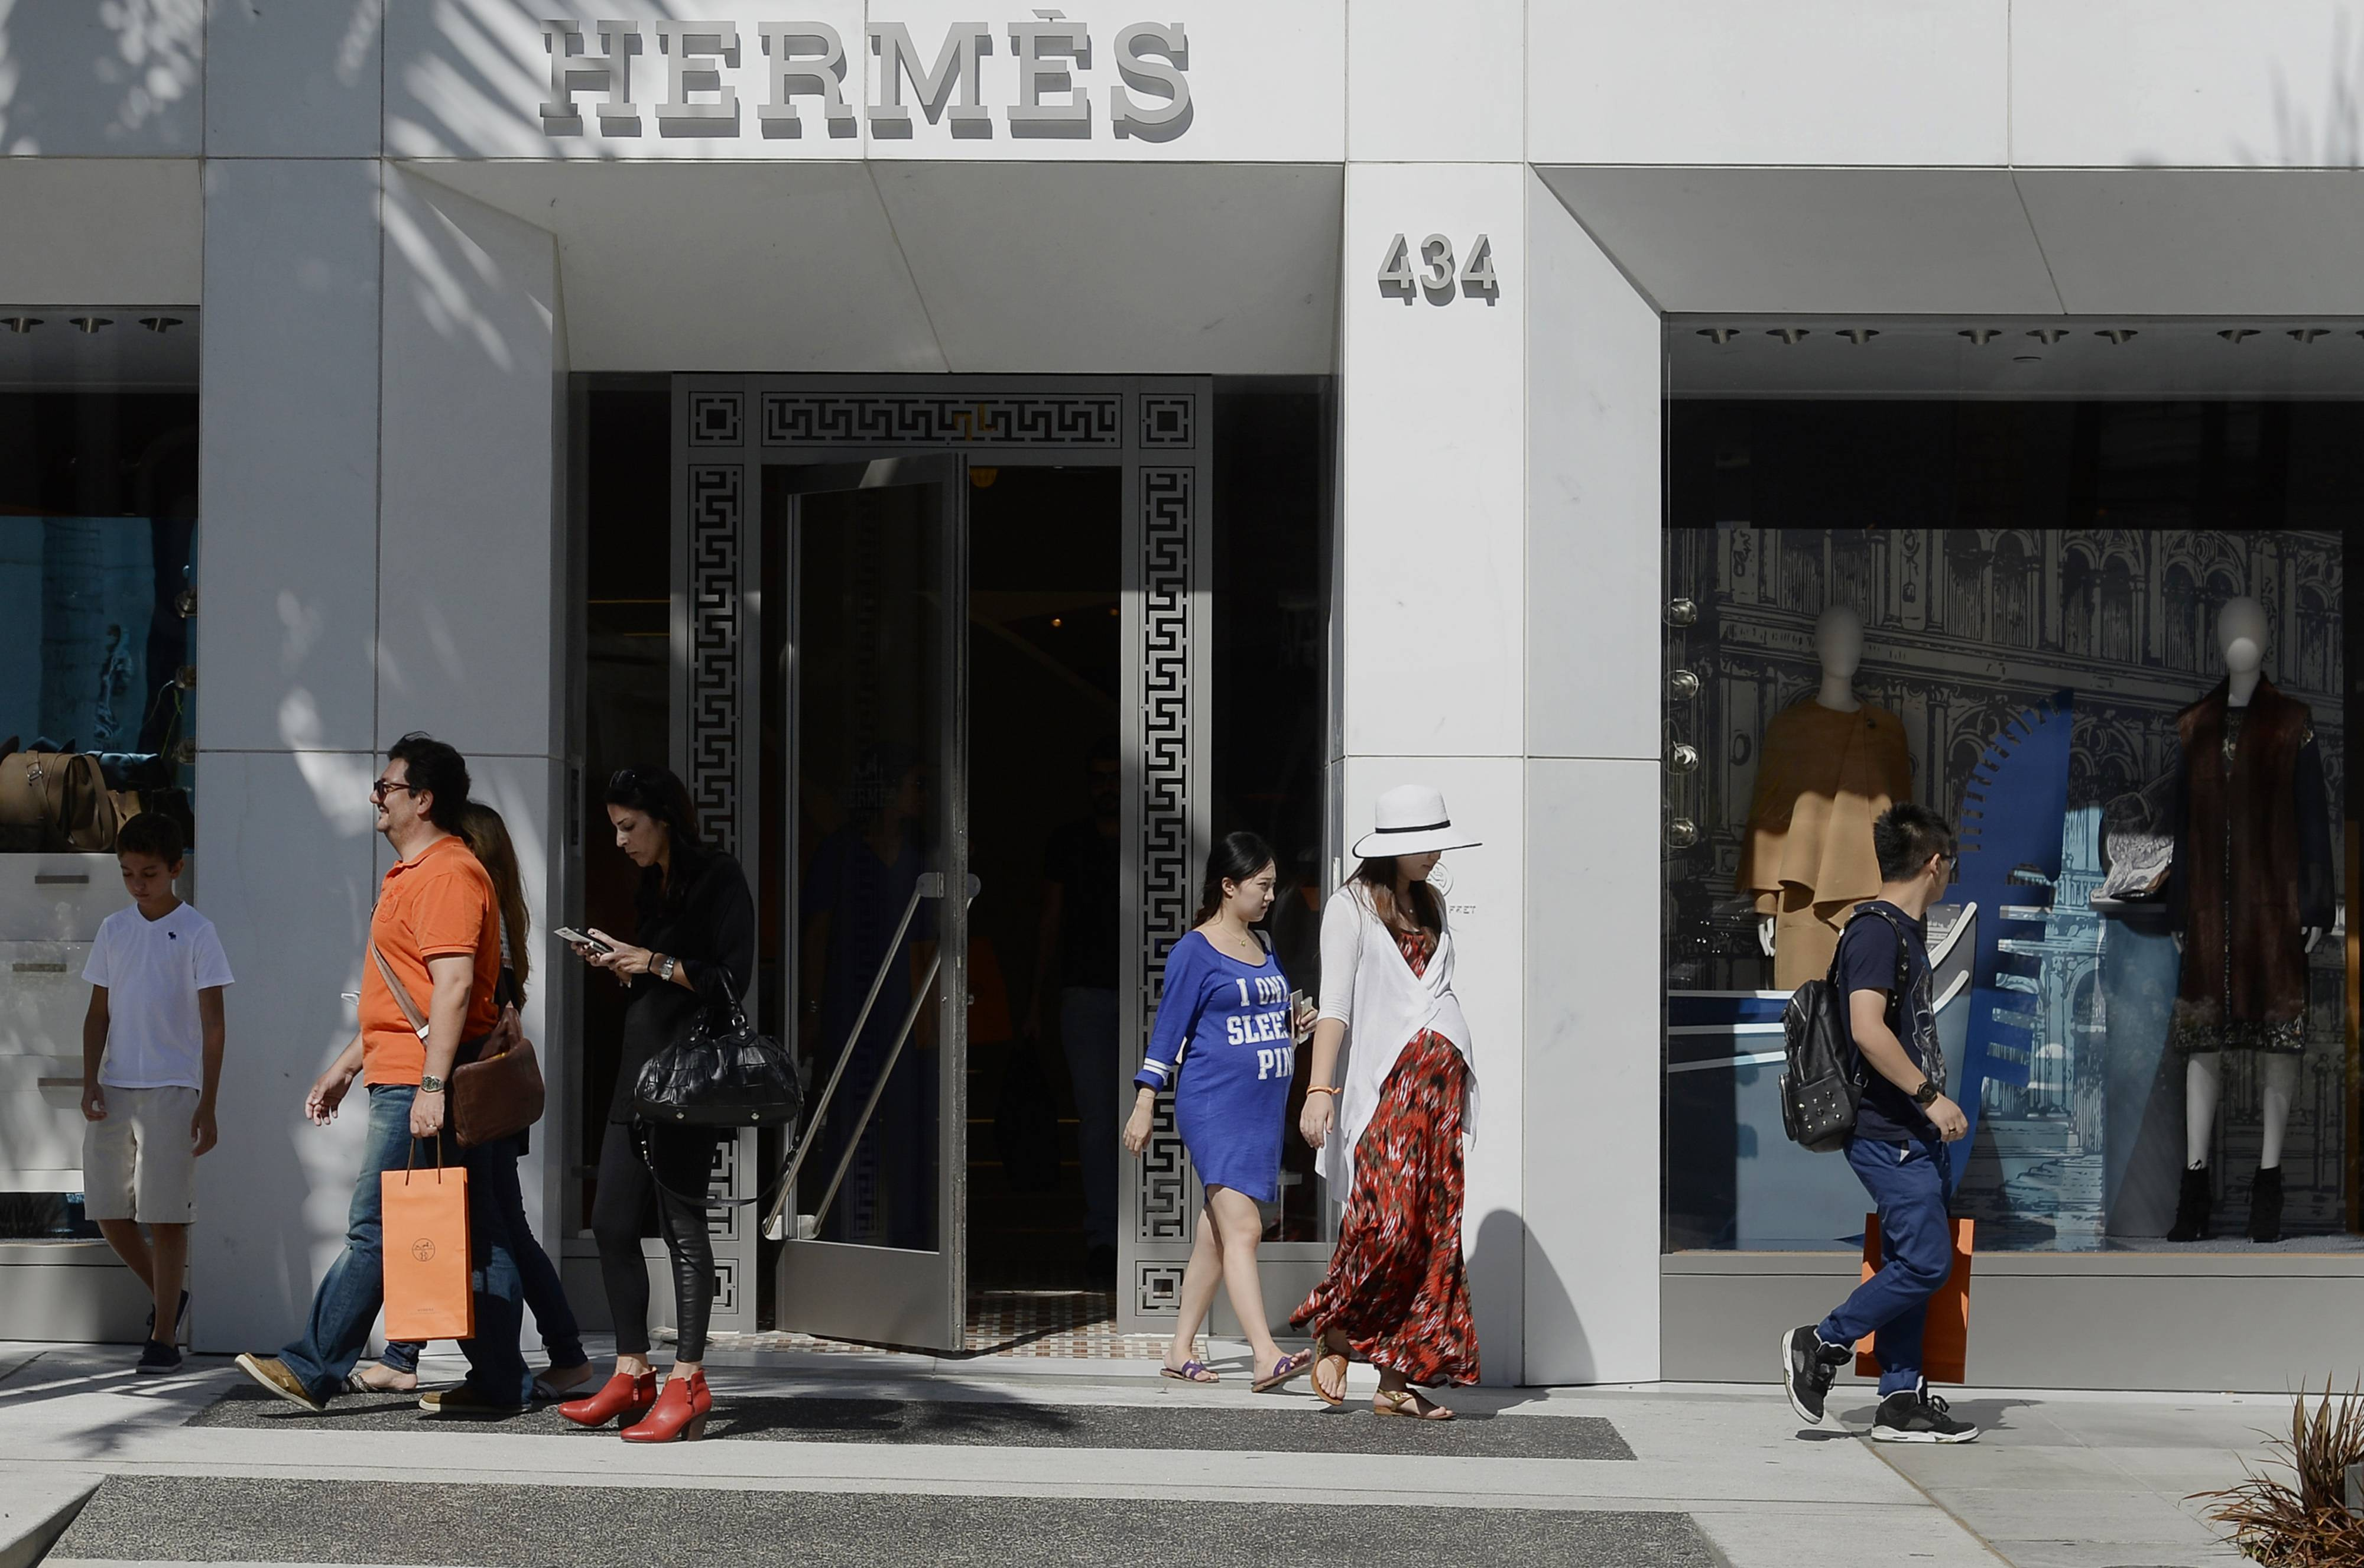 Shoppers exit a Hermes International SCA luxury goods store on Rodeo Drive in Beverly Hills. Consumer confidence in the U.S. unexpectedly climbed in August to the highest level in almost seven years, reinforcing signs of a strengthening outlook for the second half of 2014.